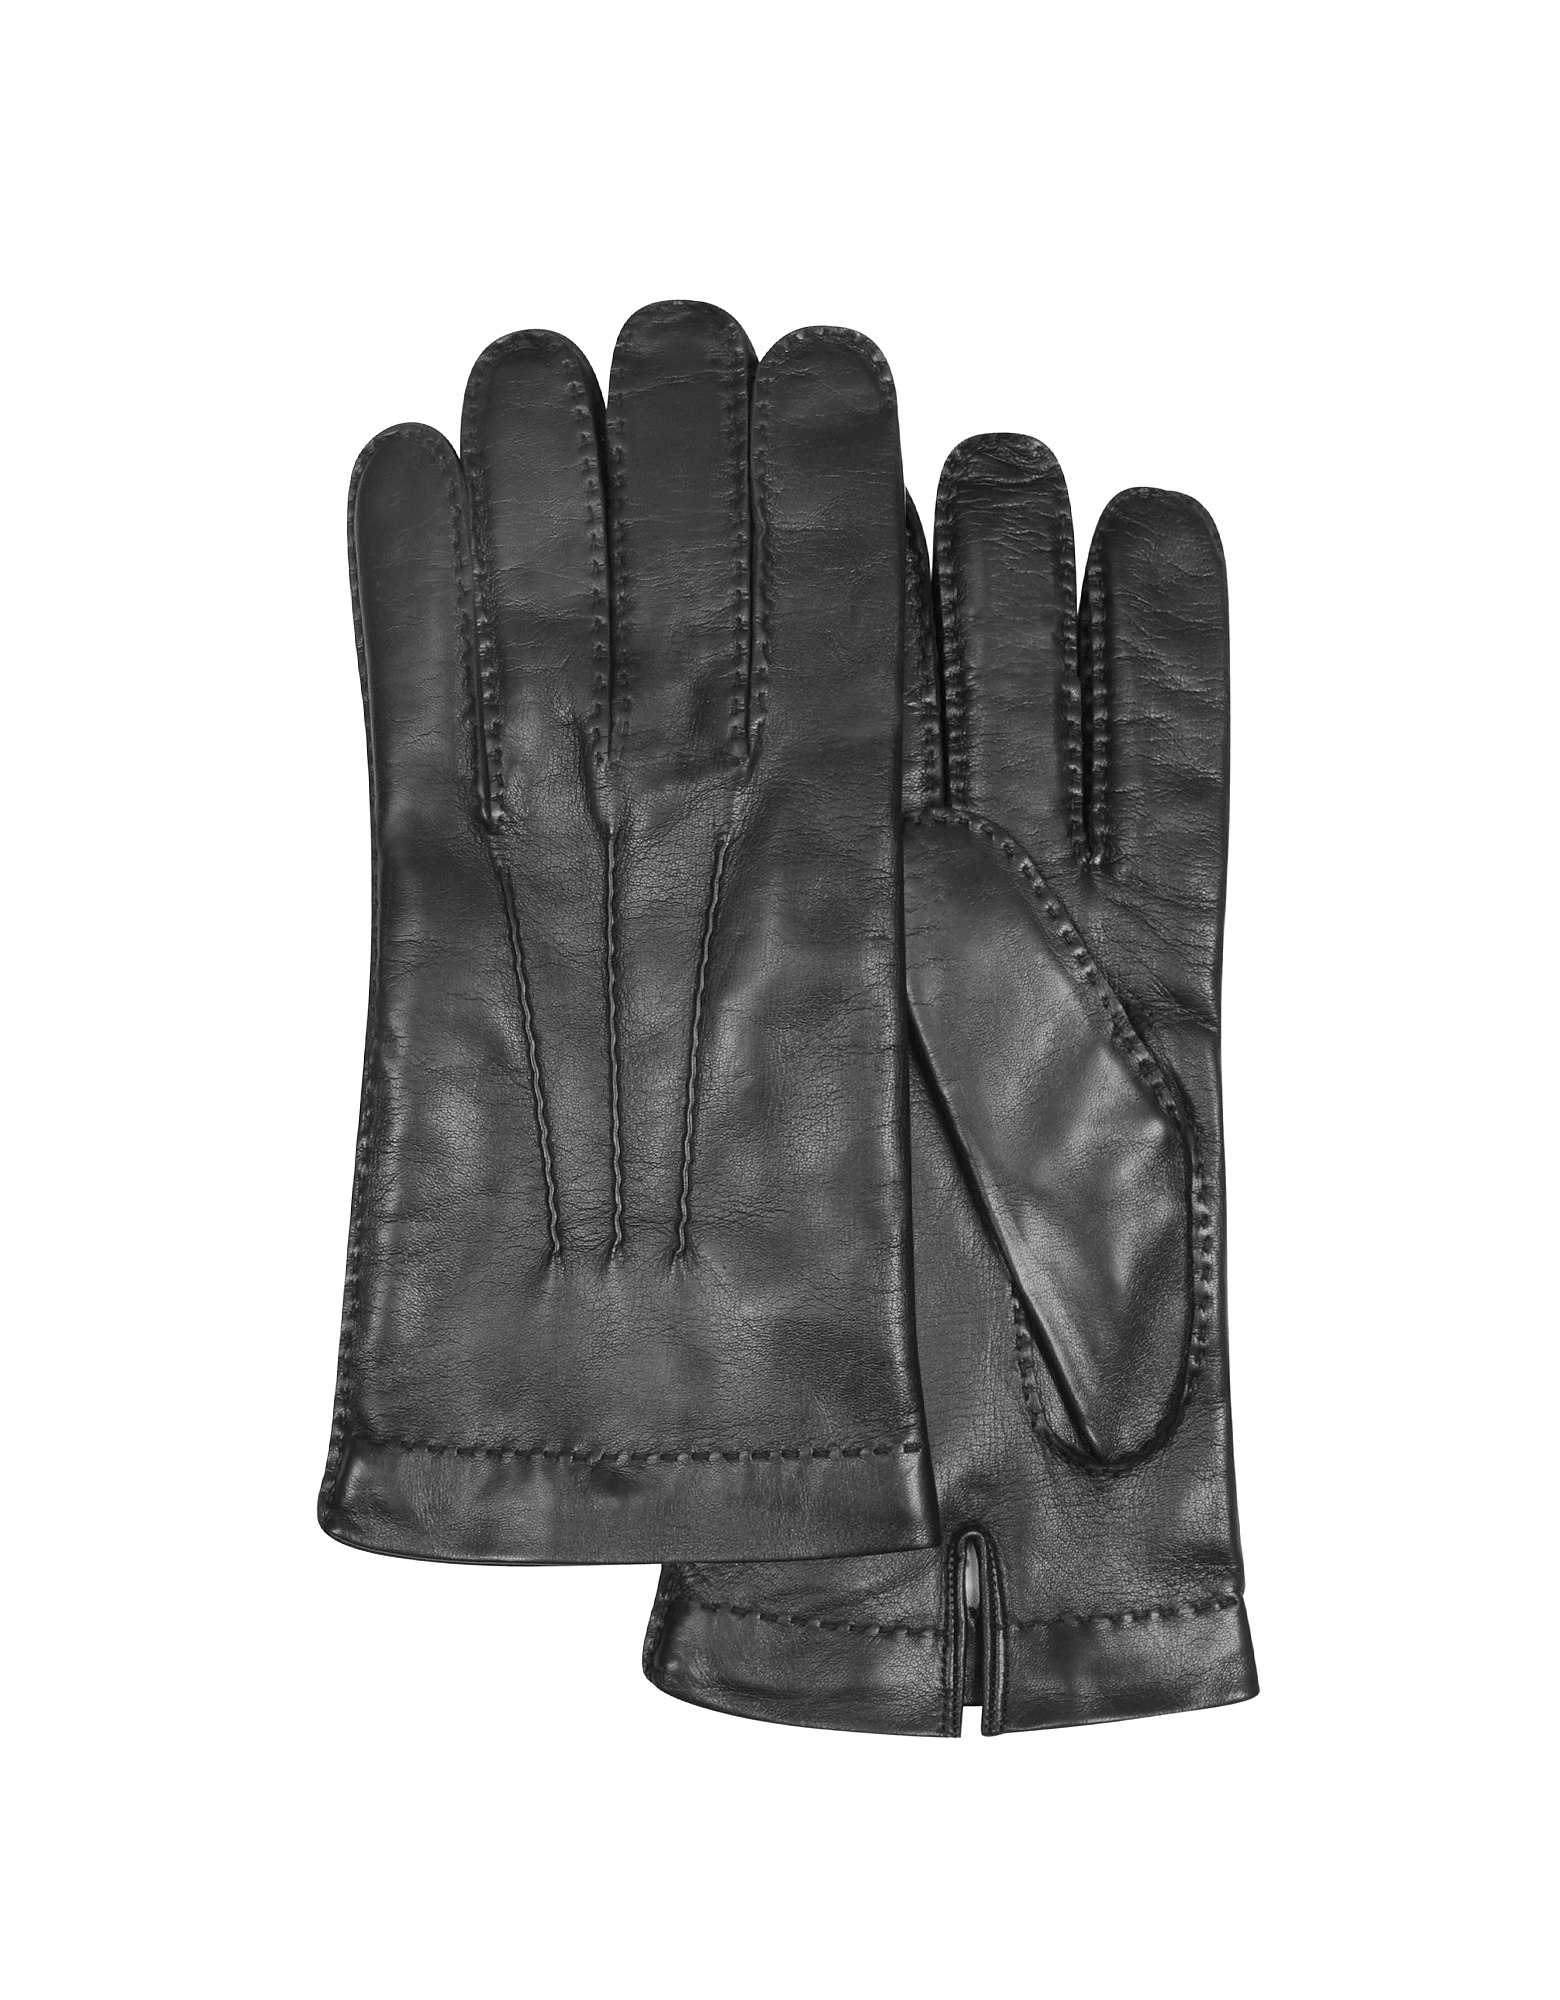 Forzieri Men's Gloves, Men's Cashmere Lined Black Italian Leather Gloves